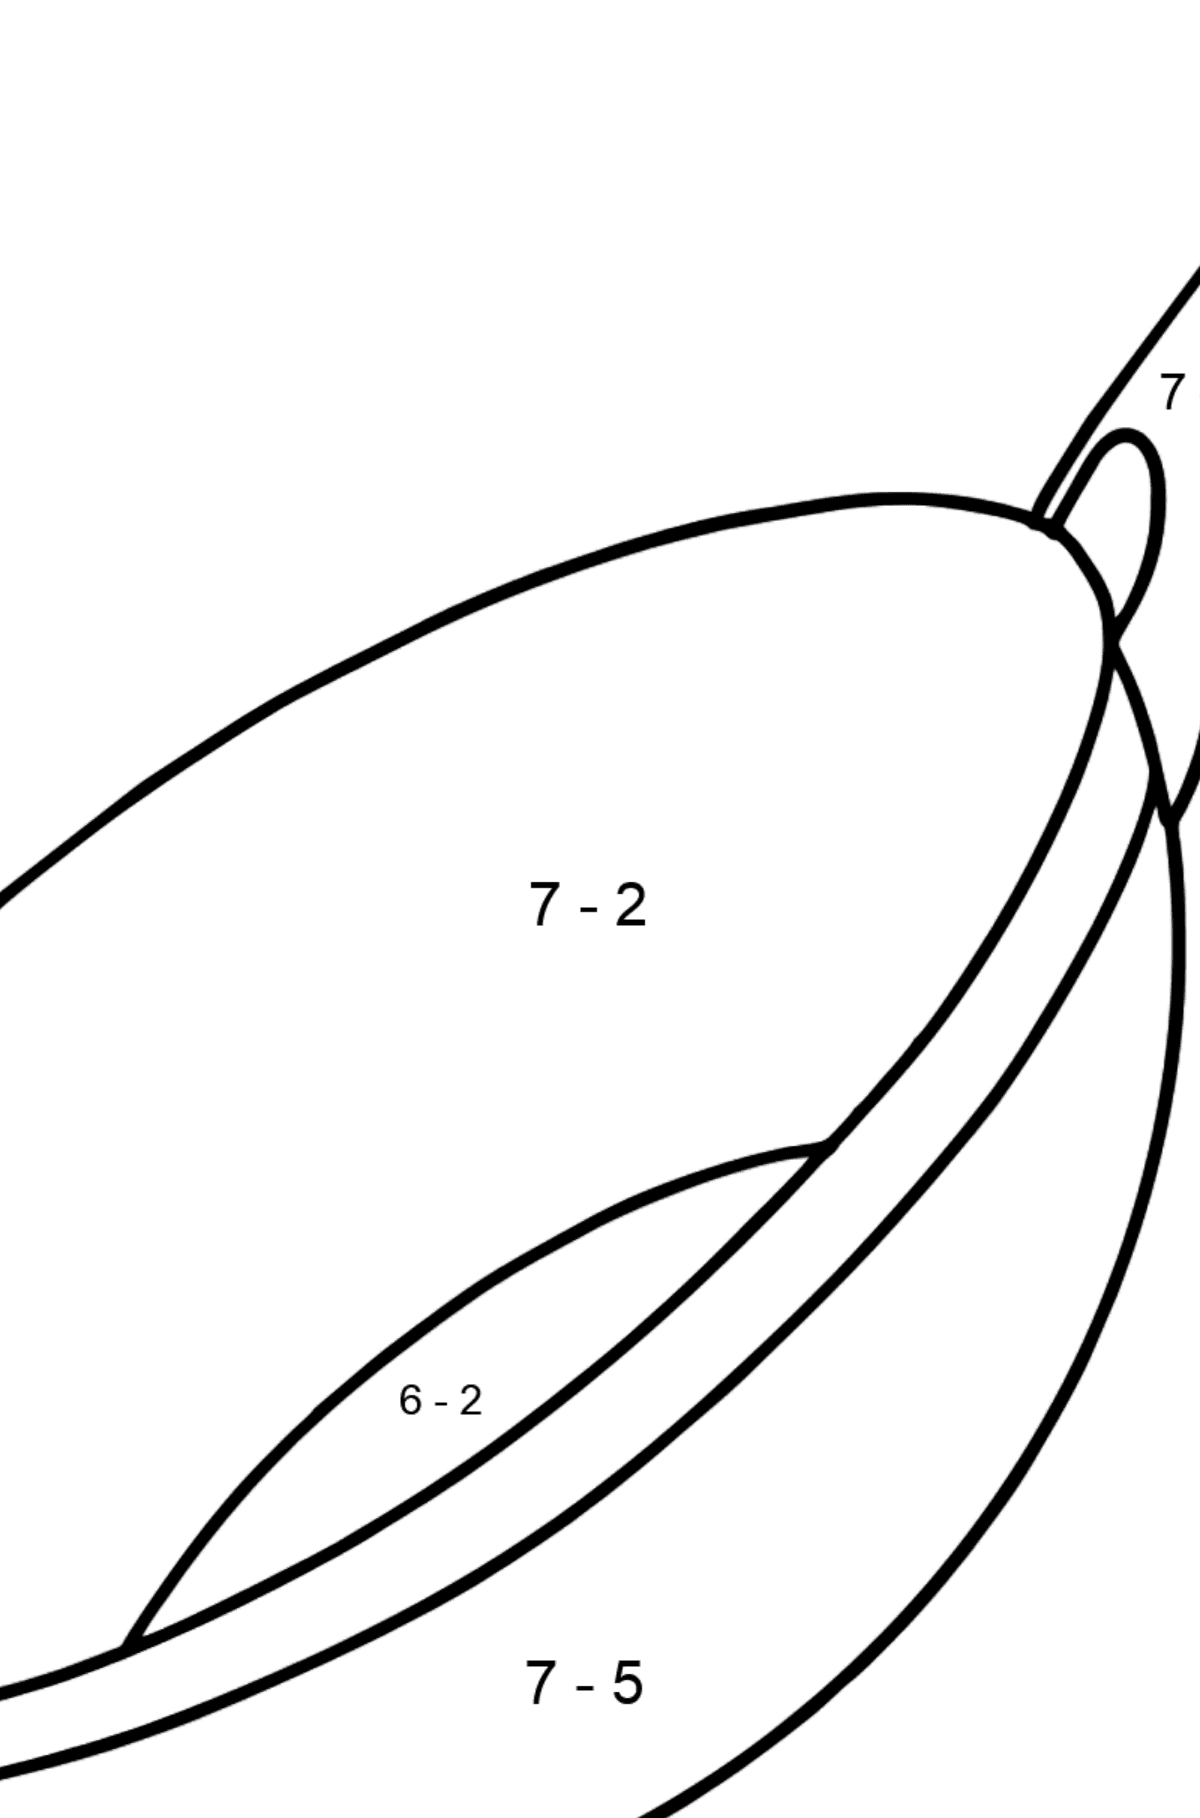 Wok pan coloring page - Math Coloring - Subtraction for Kids